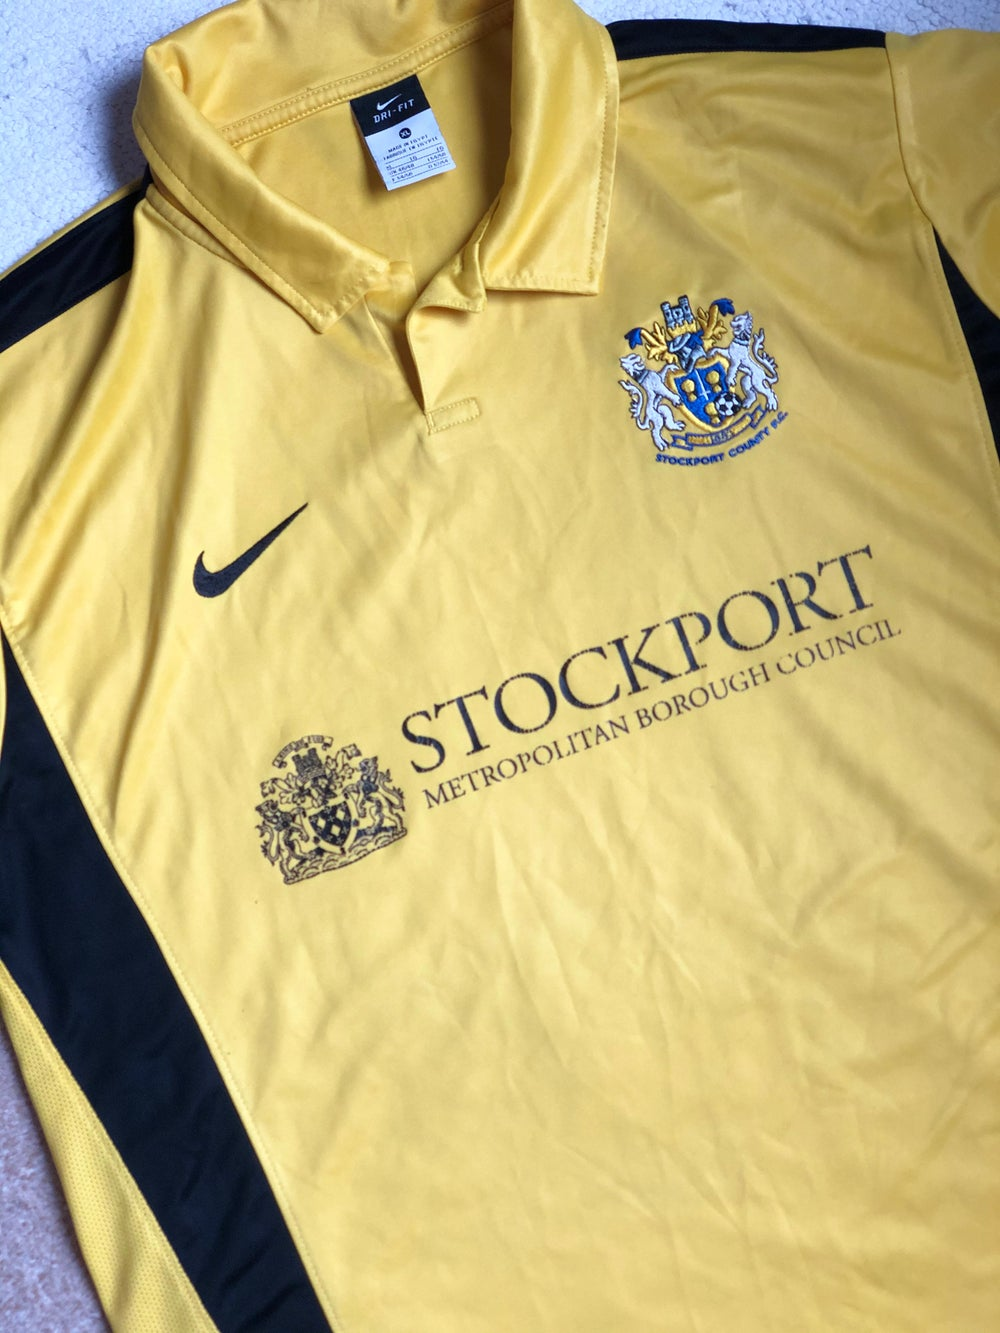 Image of Replica 2010/11 Nike Away Shirt